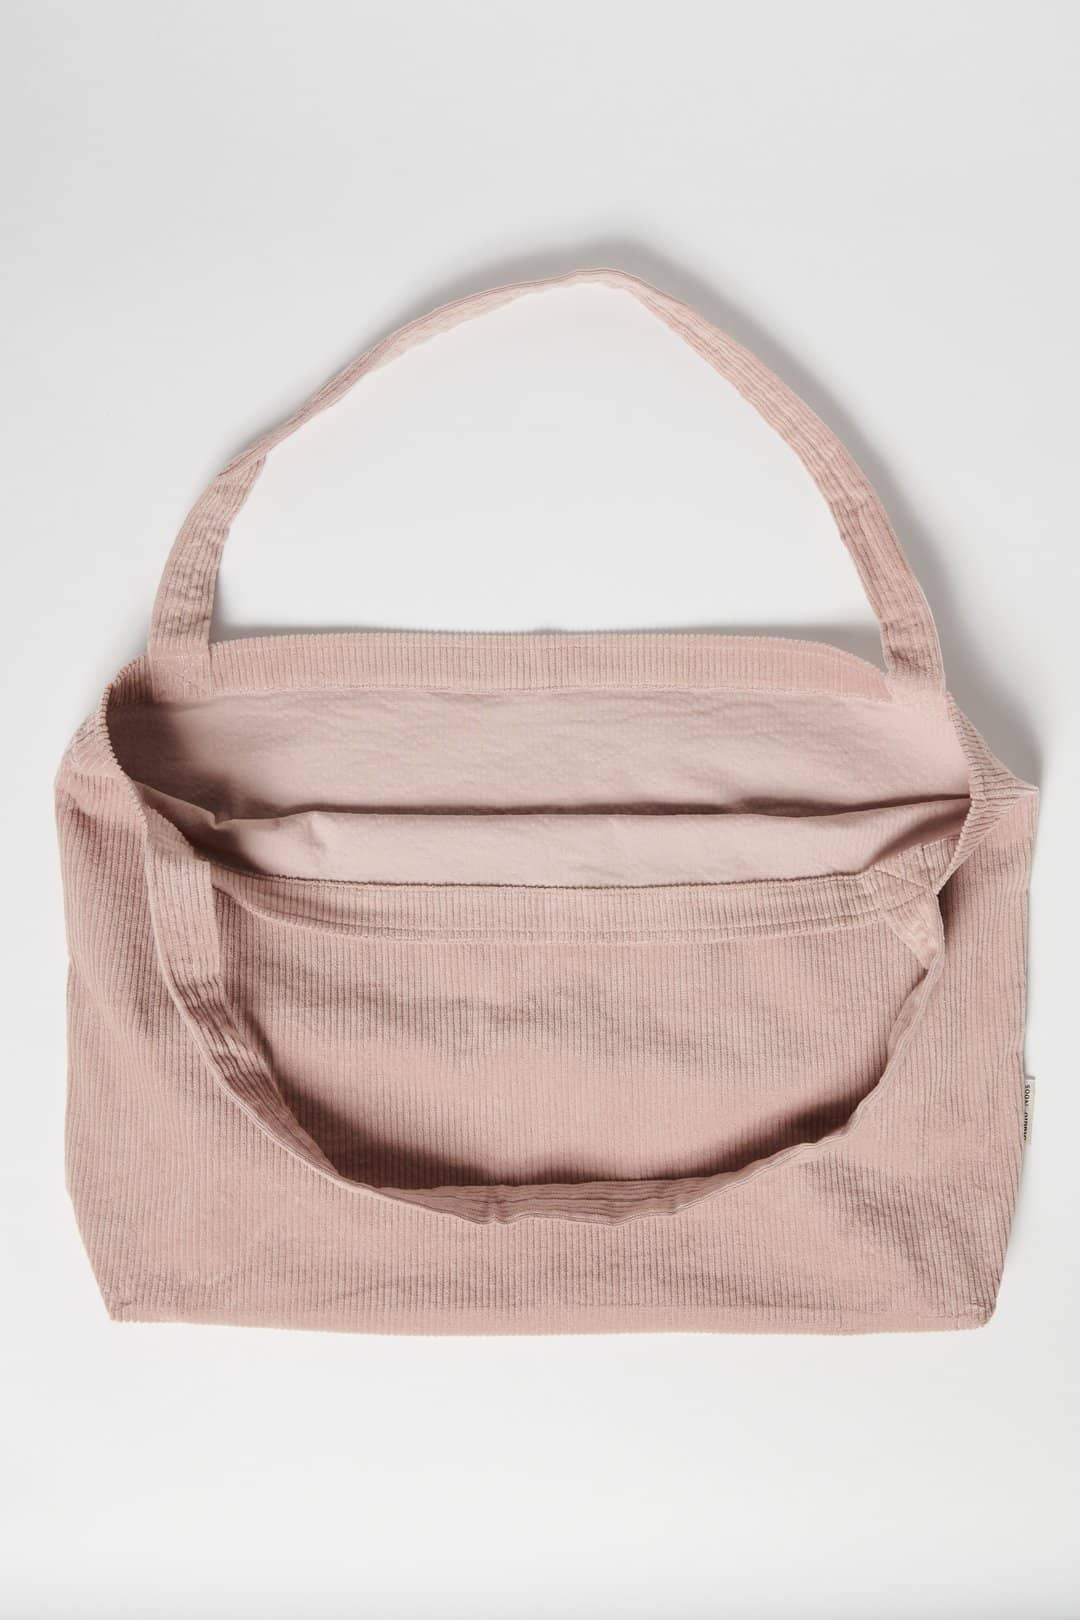 Studio Noos Studio Noos Dusty pink rib mom-bag  - Hola BB